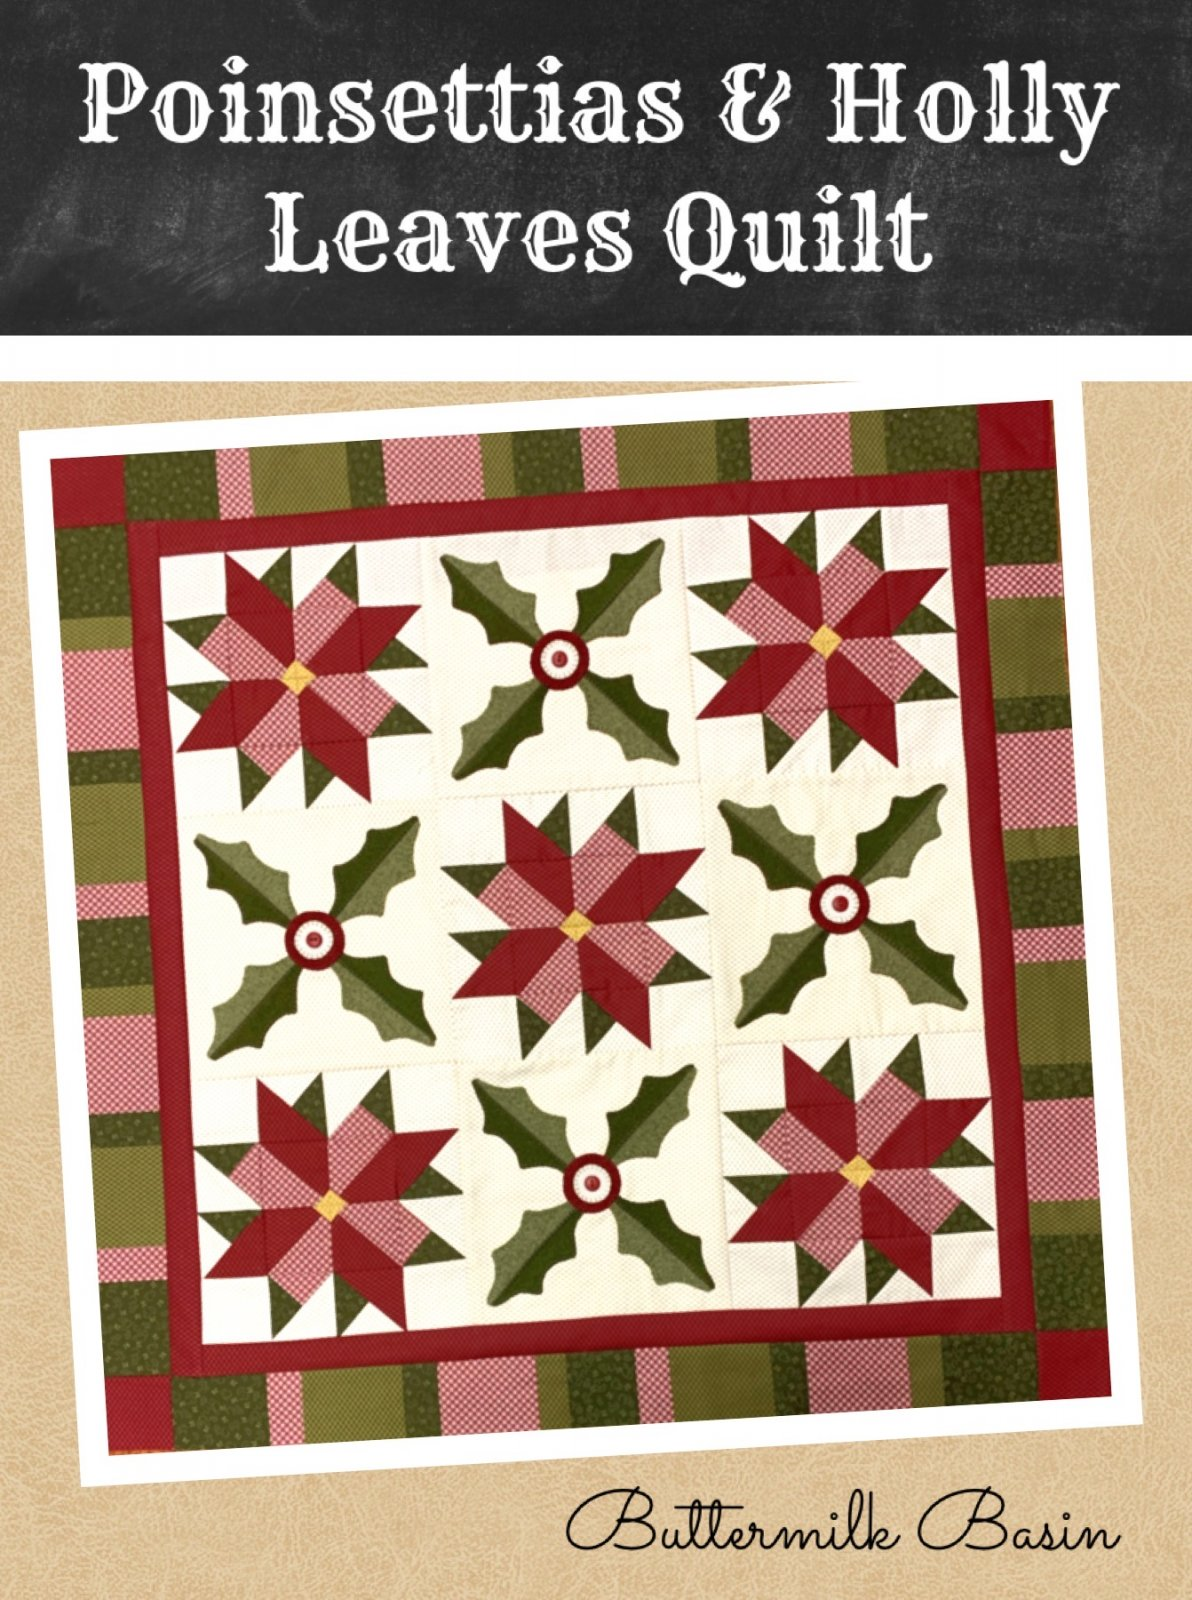 Poinsettias & Holly Leaves Quilt * Kit & Pattern